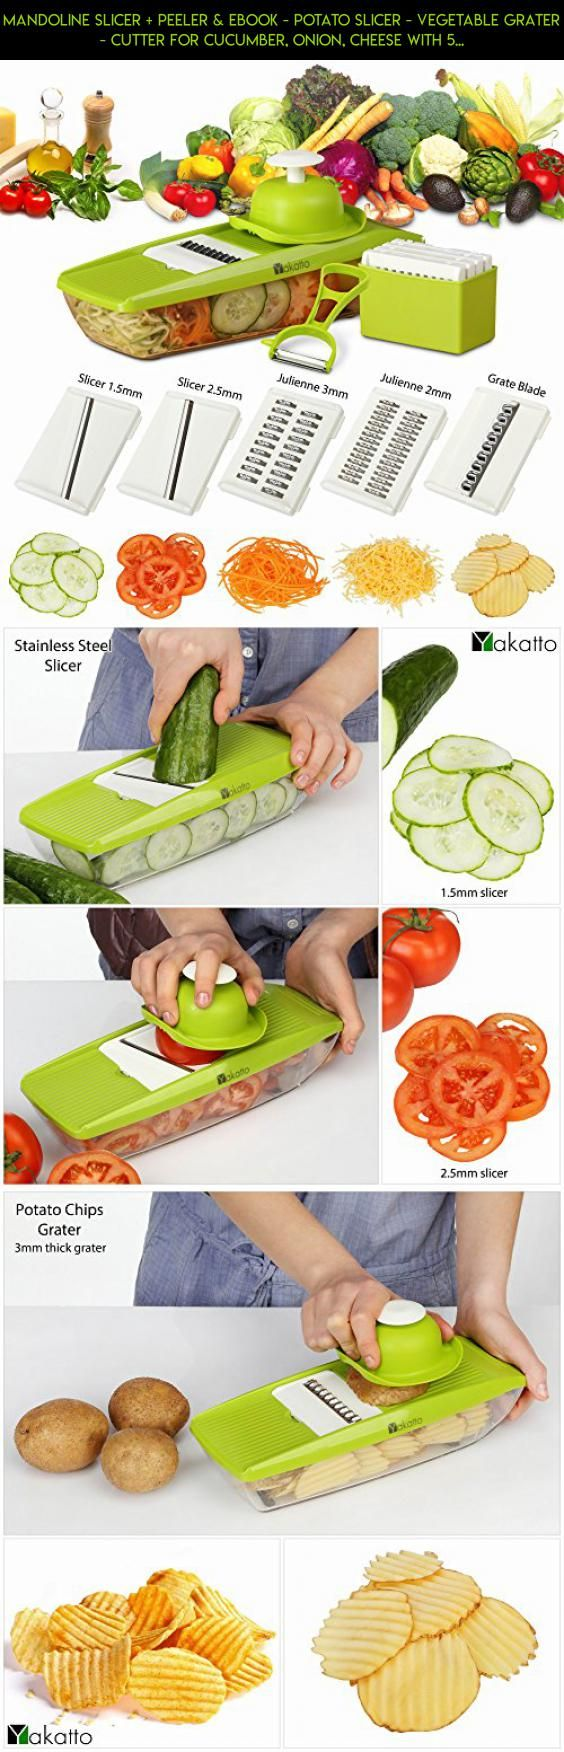 Mandoline Slicer + Peeler & eBook - Potato Slicer - Vegetable Grater - Cutter for Cucumber, Onion, Cheese with 5 Stainless Steel Blades - Julienne Vegetable Slicer - Food Container - Mandolin #outdoor #parts #plans #kit #gadgets #racing #prep #technology #products #camera #drone #tech #cooking #fpv #shopping #food